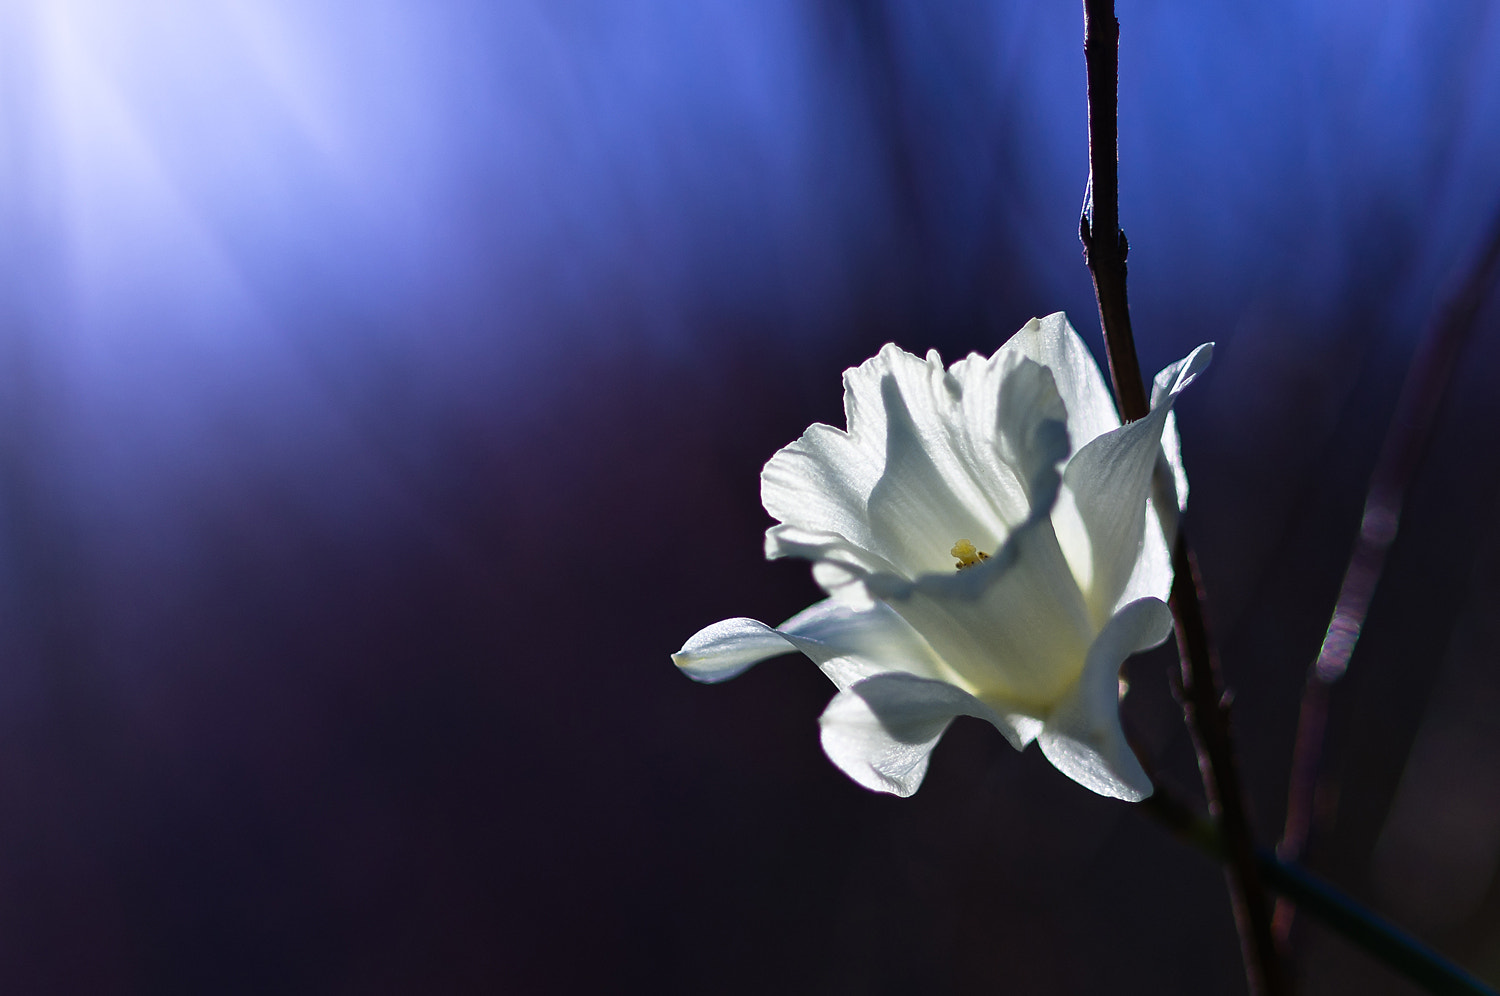 Photograph Daffodil light by Lori Coleman on 500px